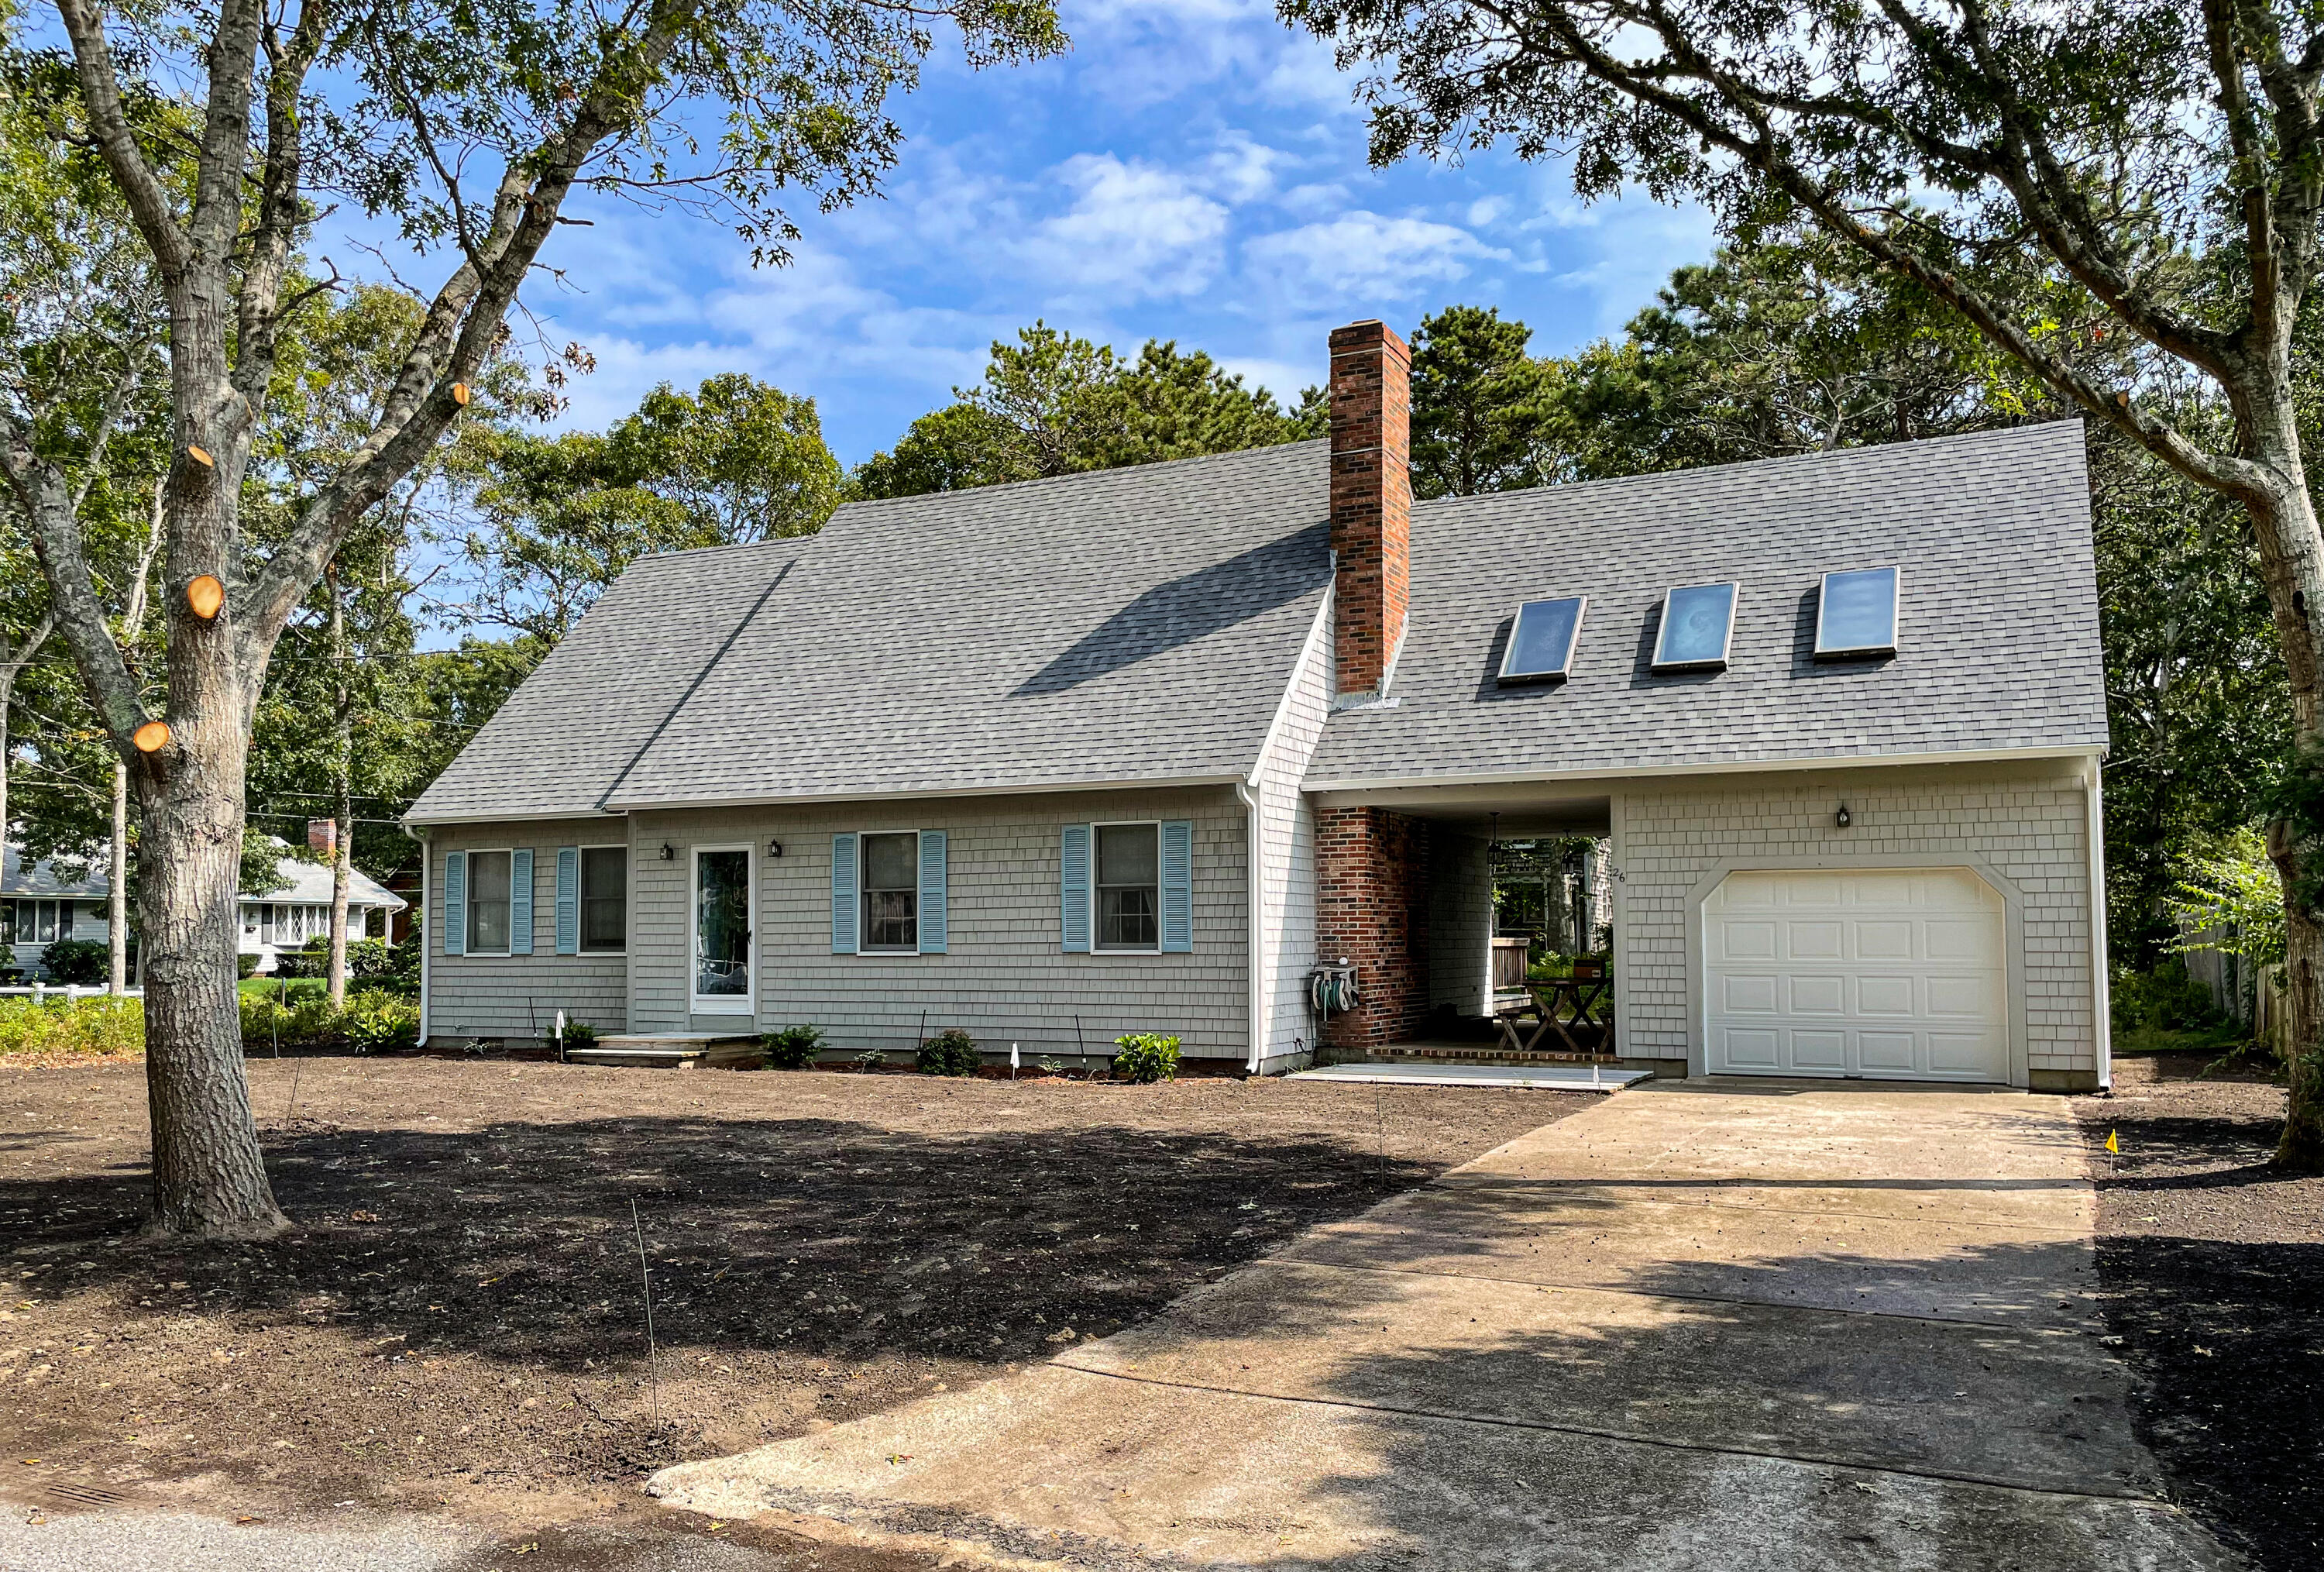 26 Burch Road, South Yarmouth MA, 02664 details